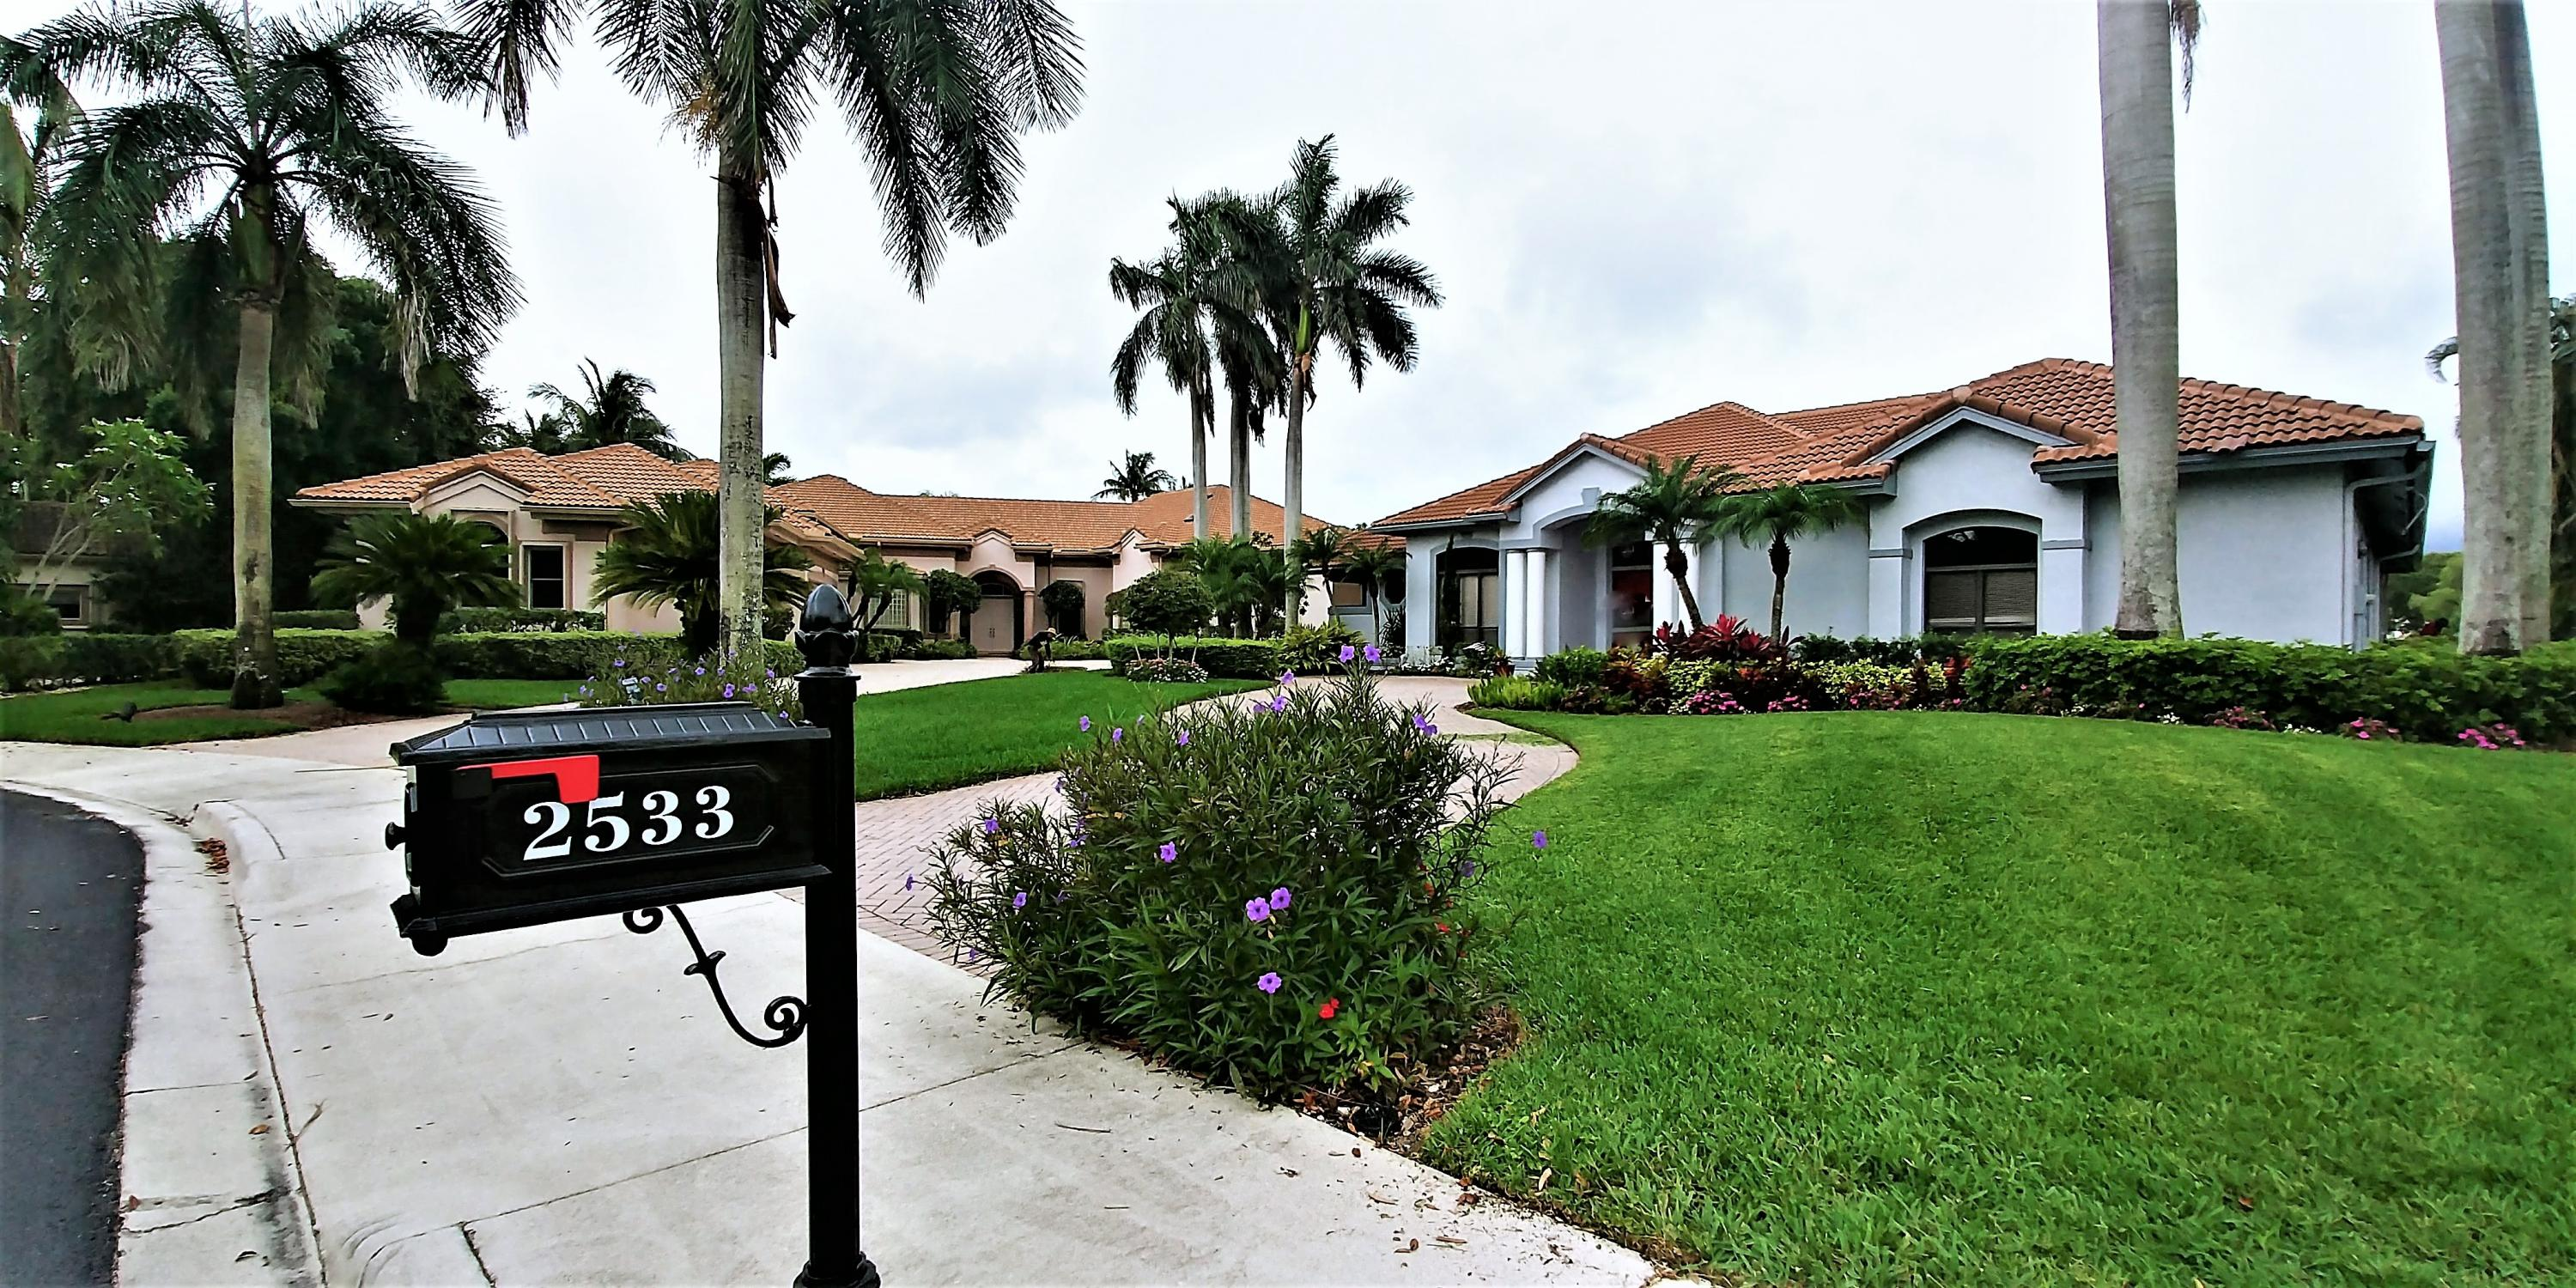 WEST PALM BEACH HOMES